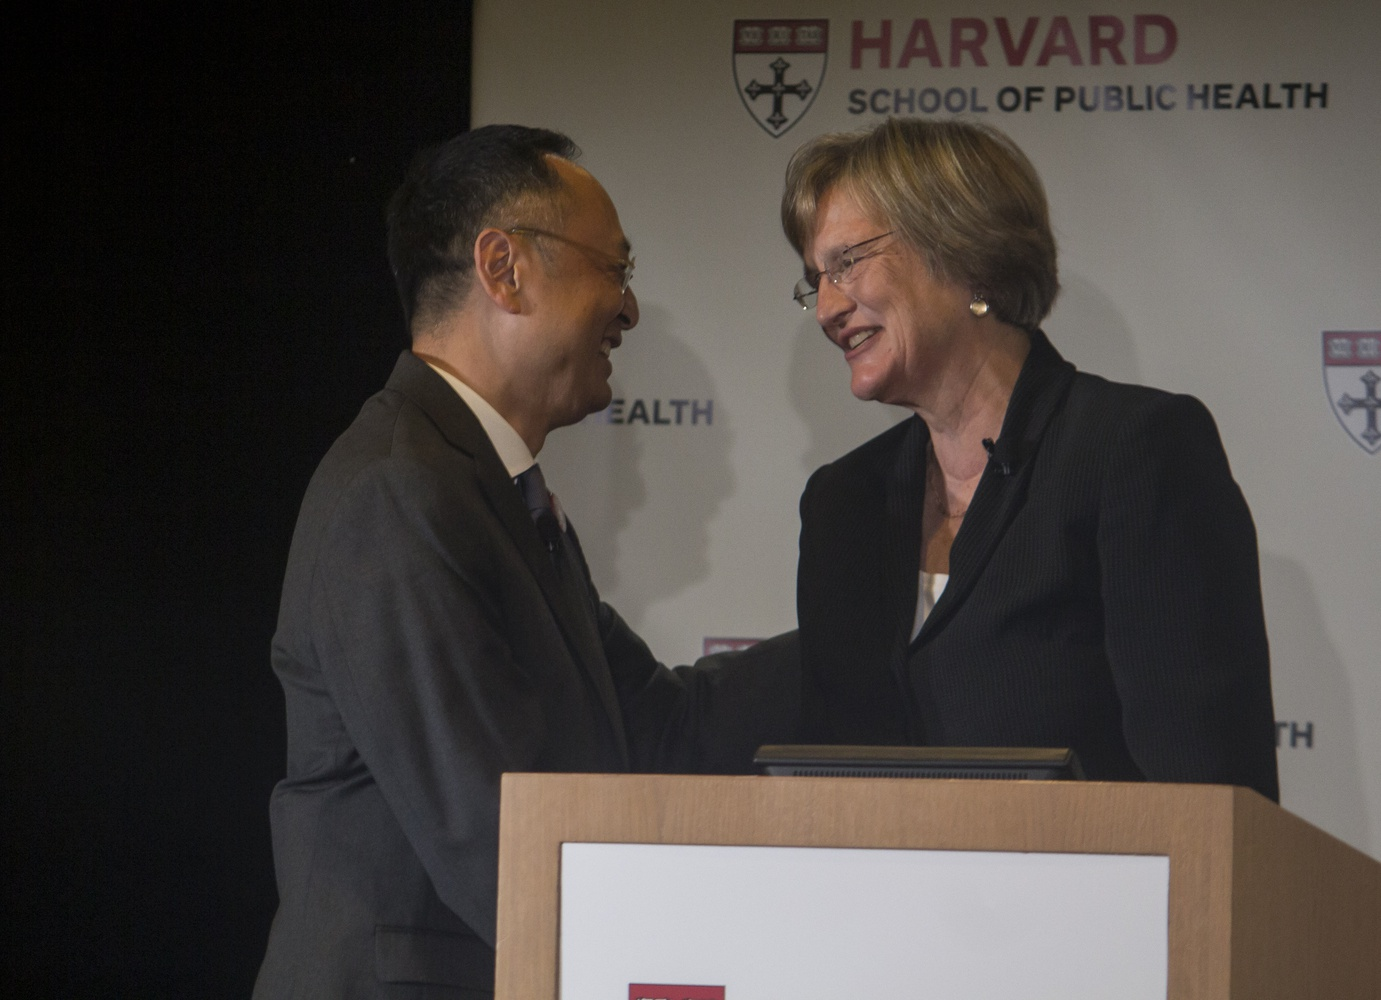 University President Drew G. Faust welcomes Gerald L. Chan  on stage at the unveiling of his foundation's $350 million gift to the Harvard School of Public Health in September 2014.